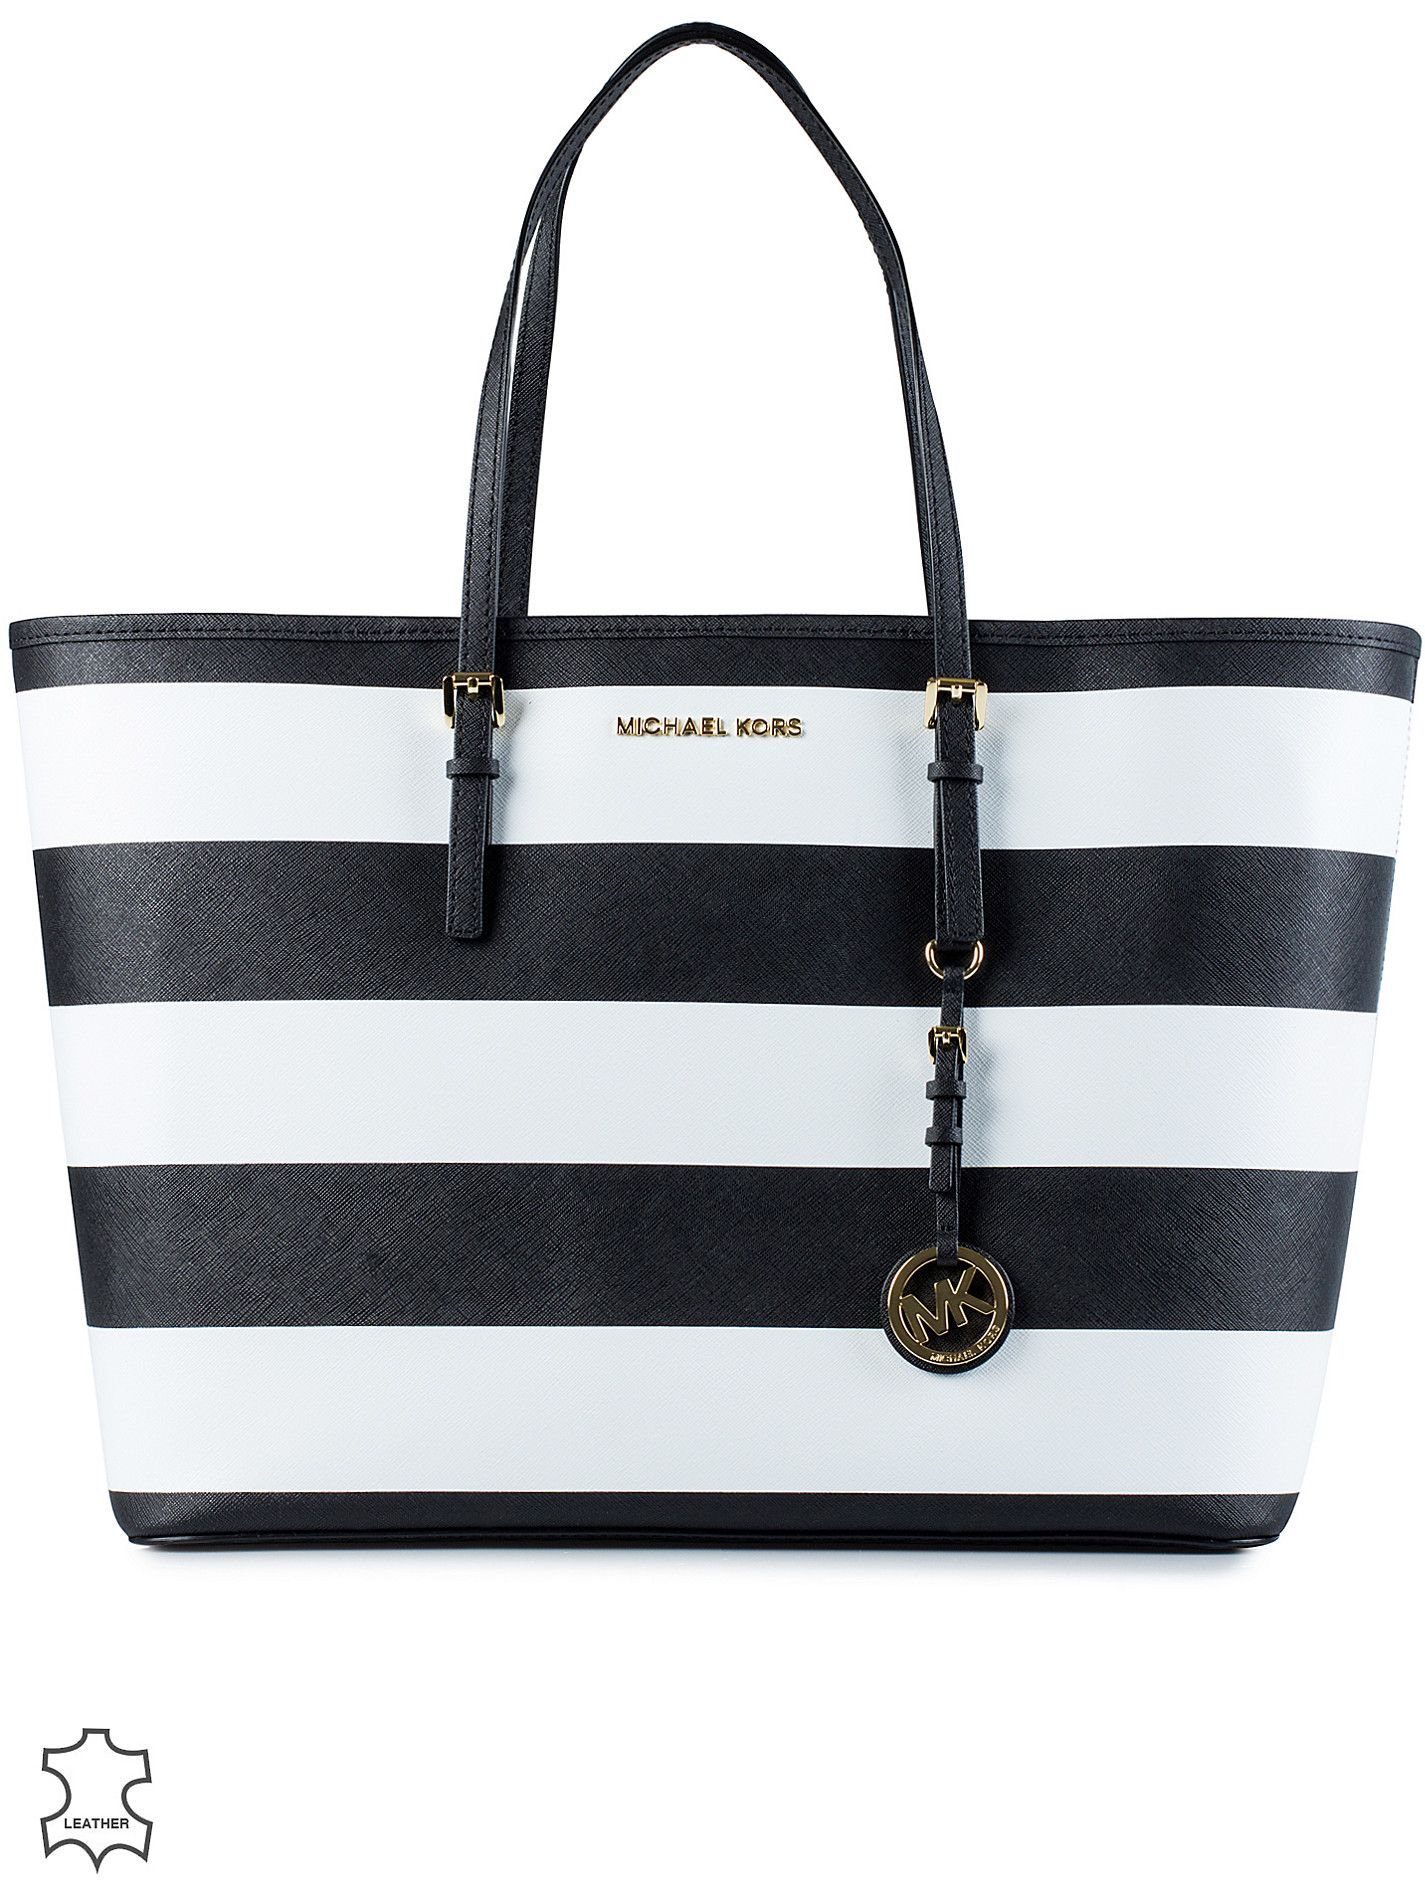 nelly michael kors